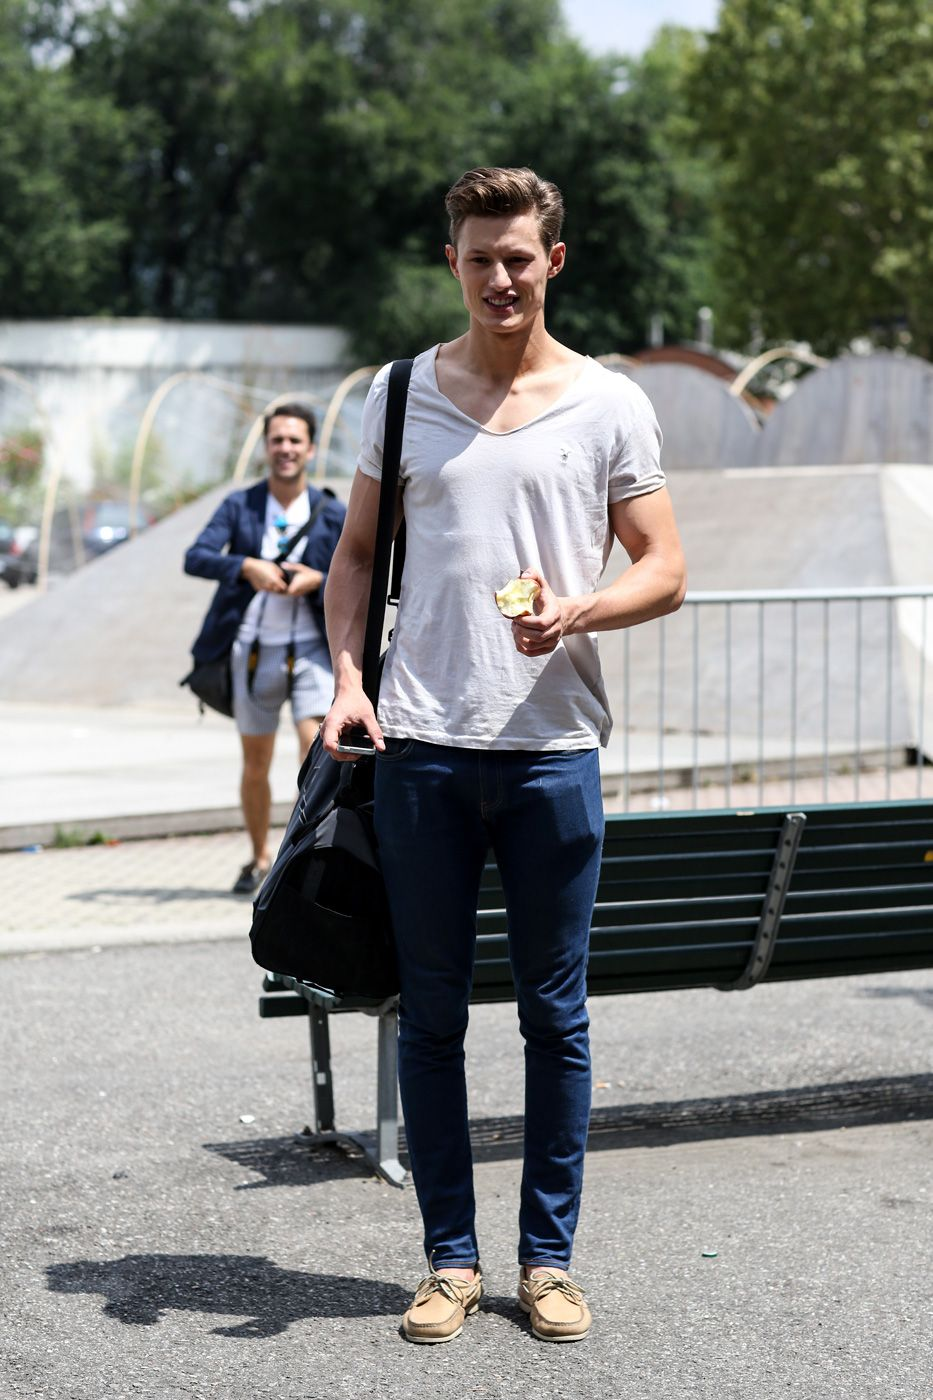 street-style-milan-mens-shows-day-3-the-impression-june-2014-001.jpg 933×1400 pikseli